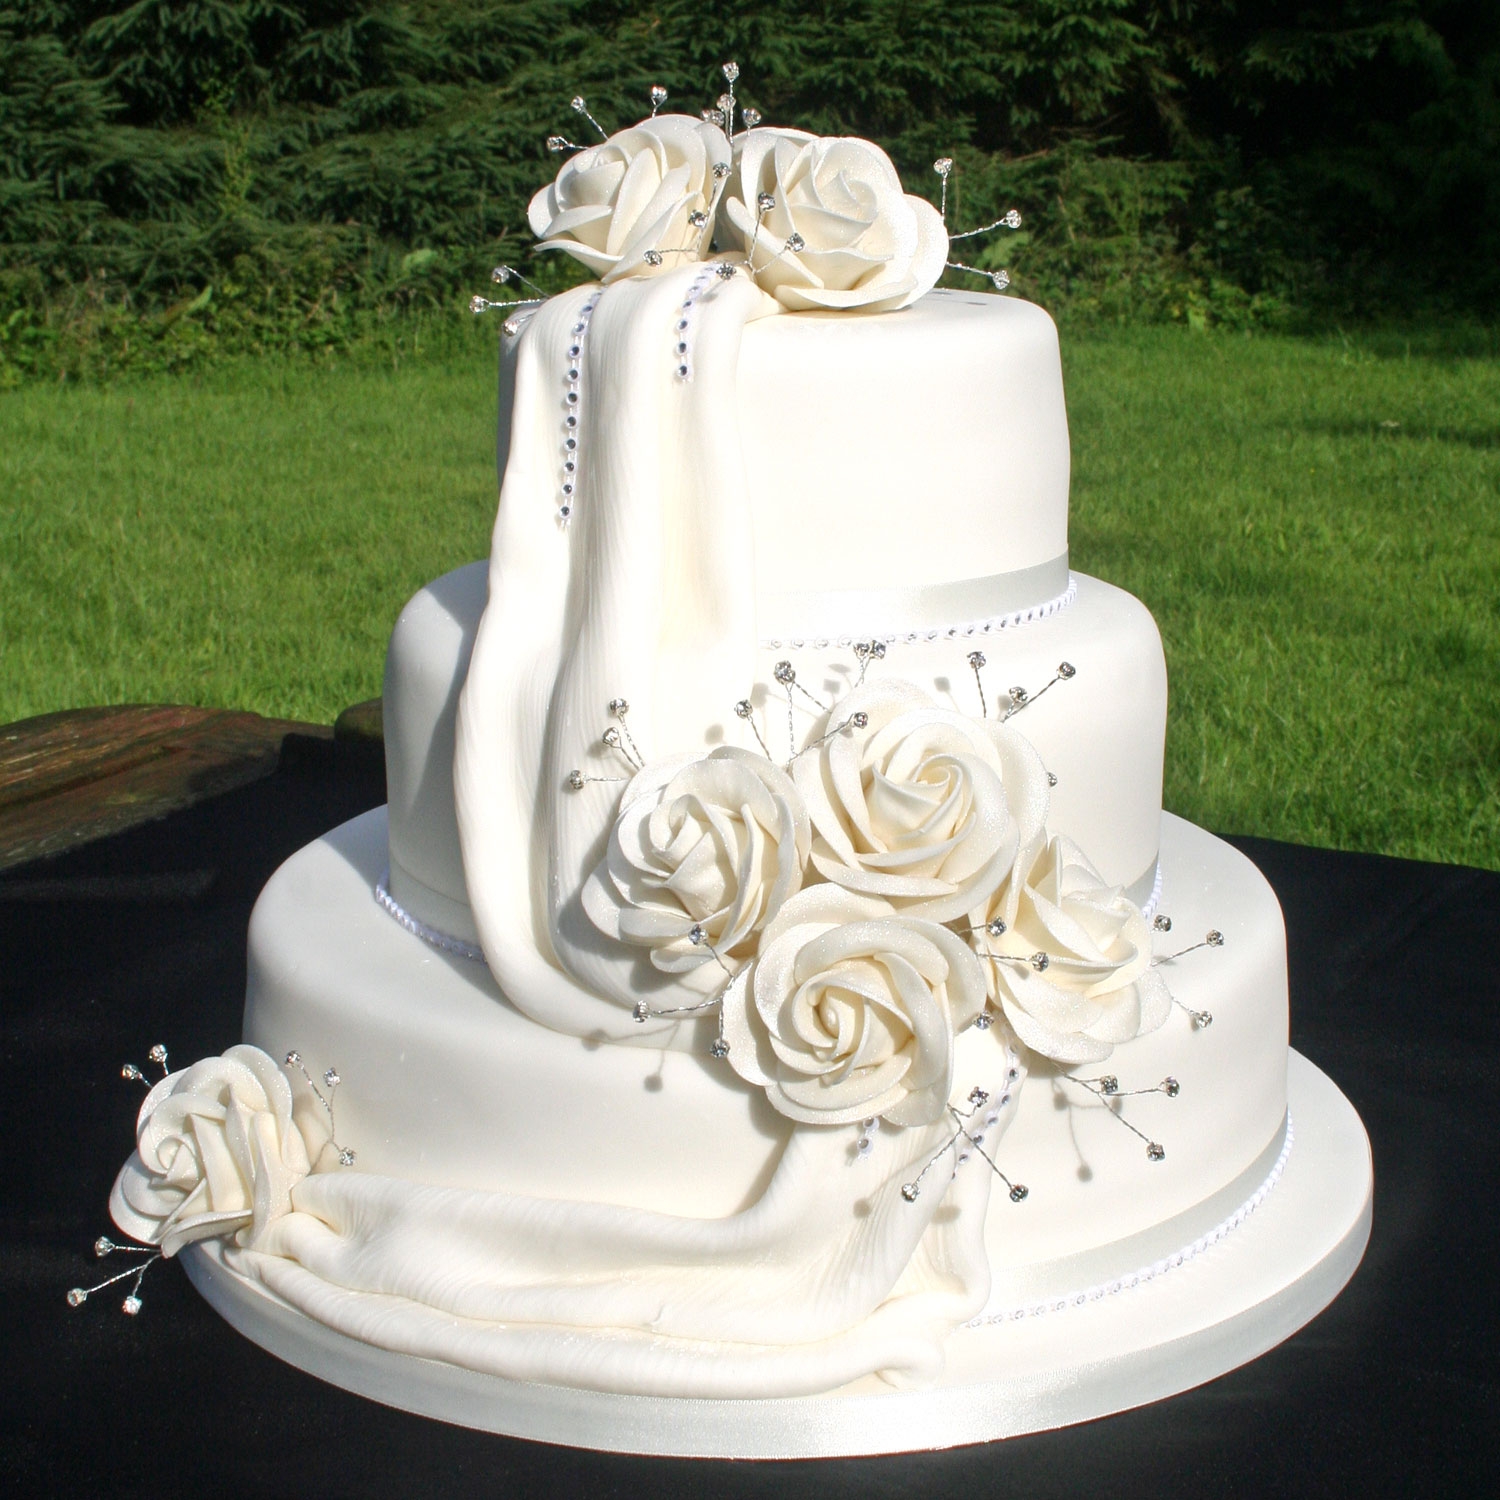 Classic Wedding Cakes Vintage and Retro Wedding Cake Designs ...